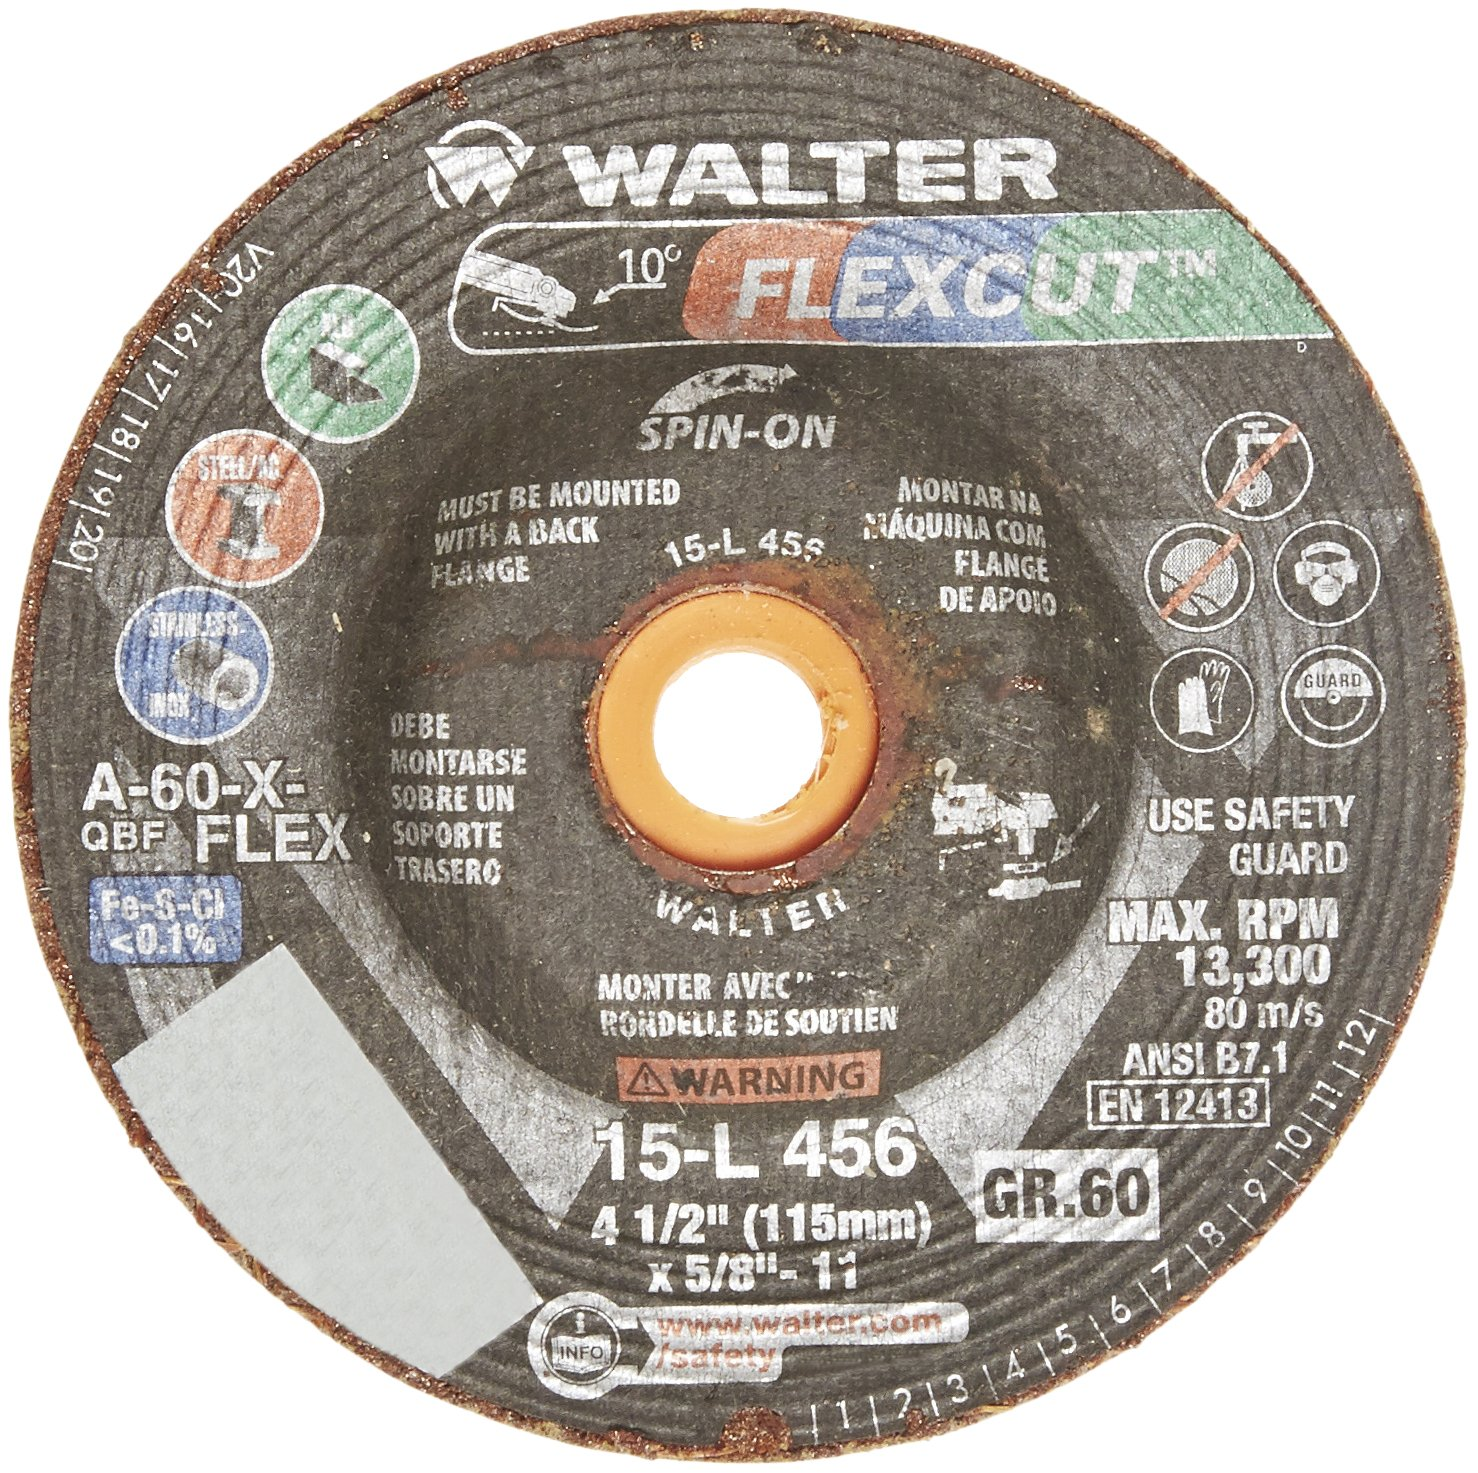 Walter 15L456 FLEXCUT Flexible Grinding Wheel [Pack of 25] - A-60-X-FLEXGrit, 4-1/2 in. Abrasive Wheel with Arbor Hole Fastening. Angle Grinding Wheels by Walter Surface Technologies (Image #2)